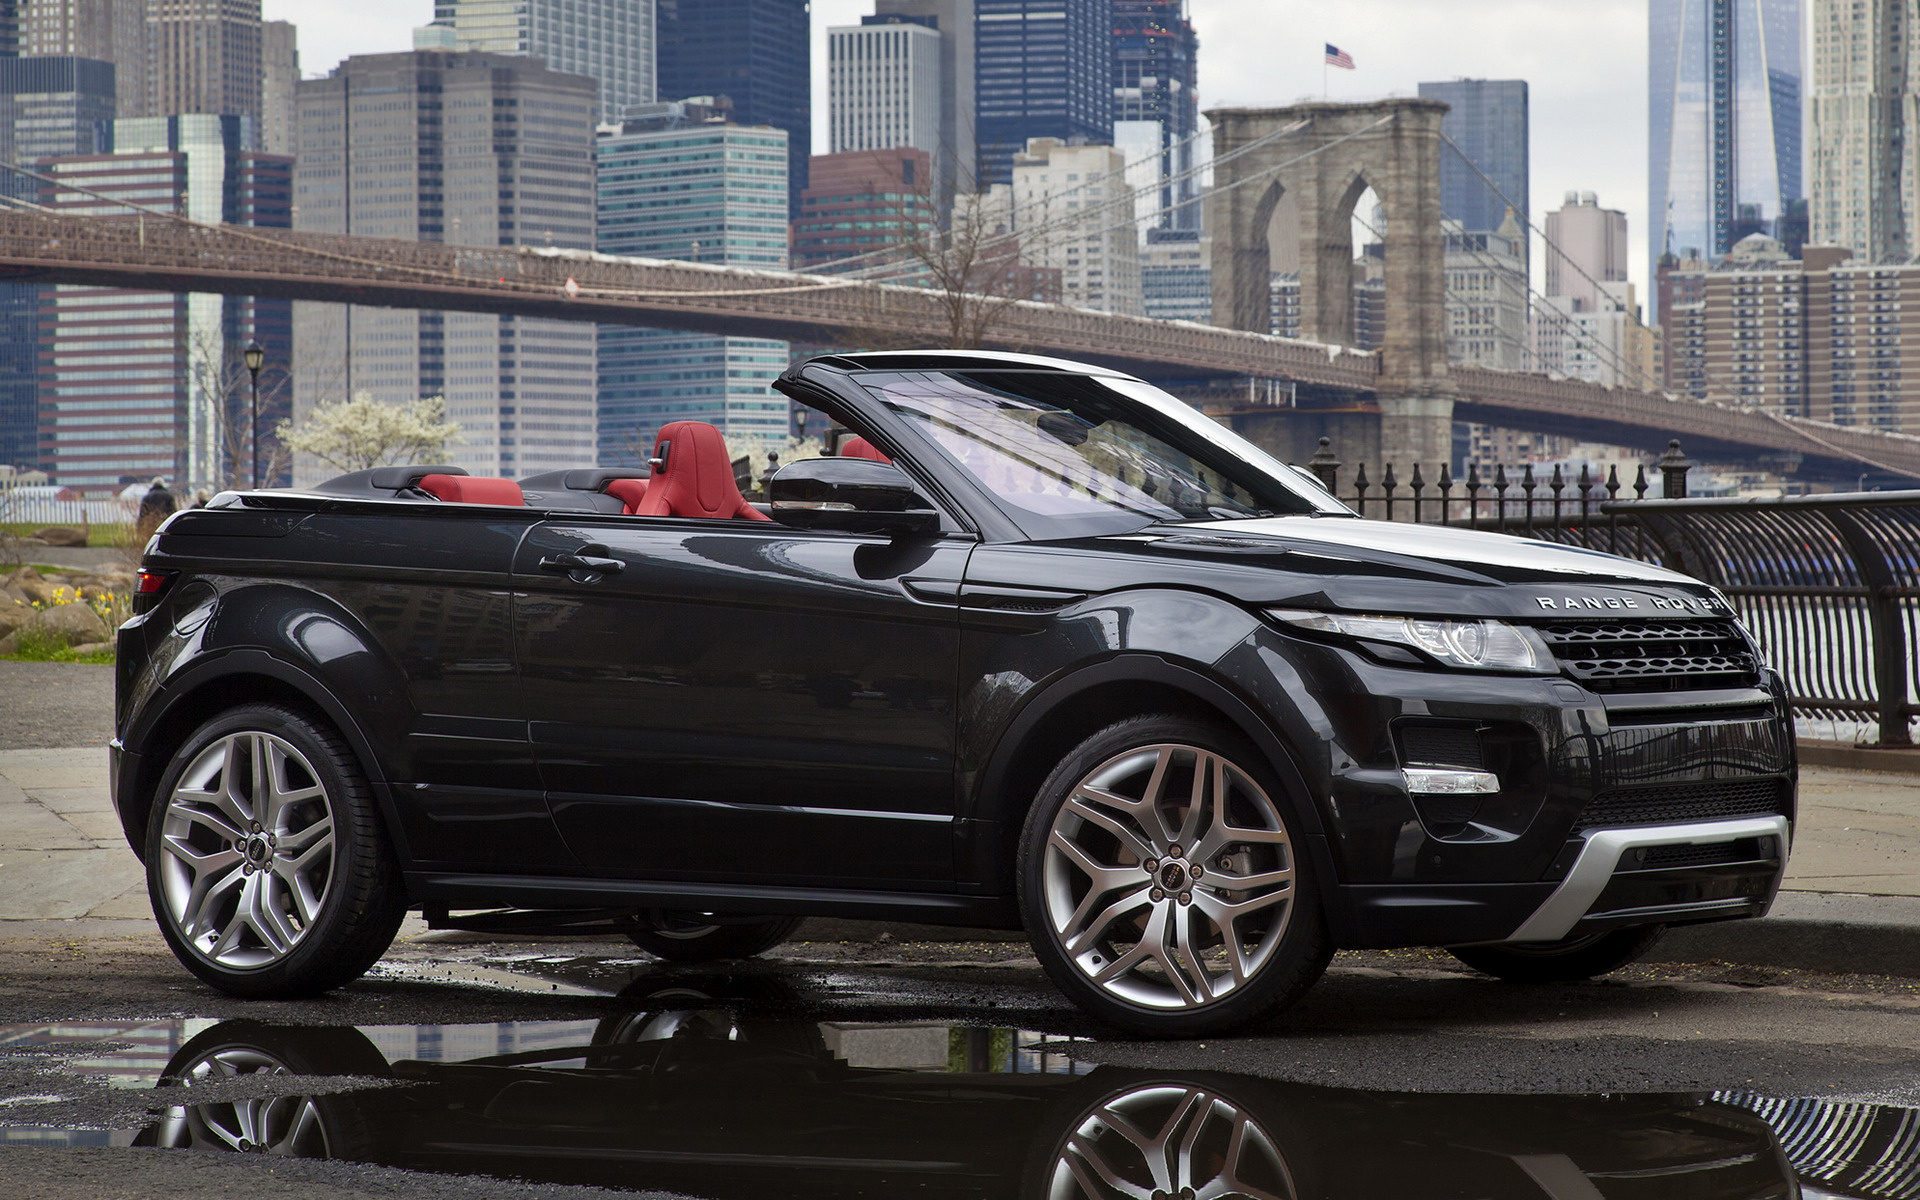 https://www.carpixel.net/w/efdd39c3fad01e21794982ead59781bb/range-rover-evoque-convertible-concept-car-wallpaper-36923.jpg